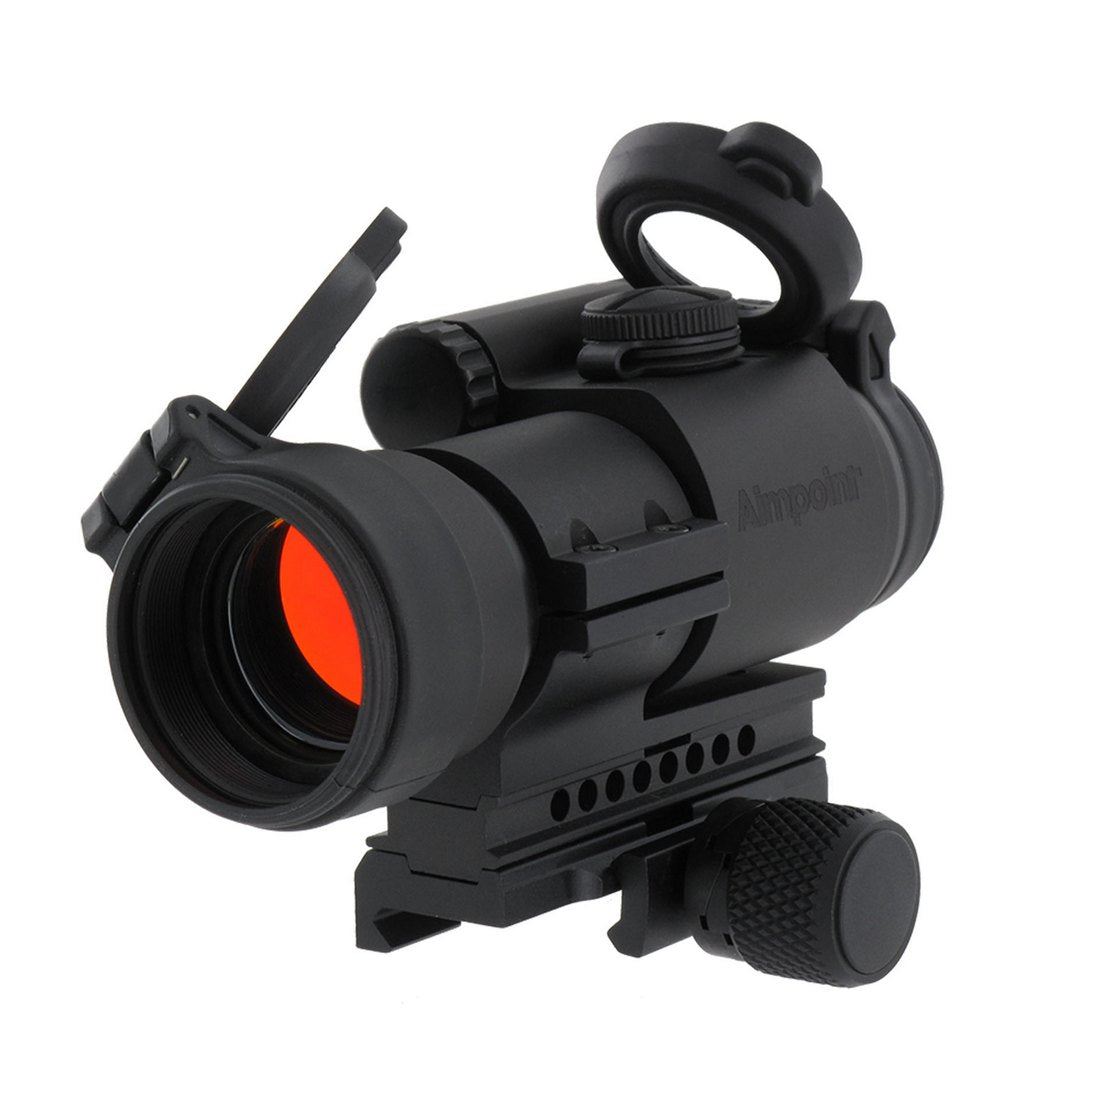 Aimpoint 12841 PRO Sight - Security Pro USA